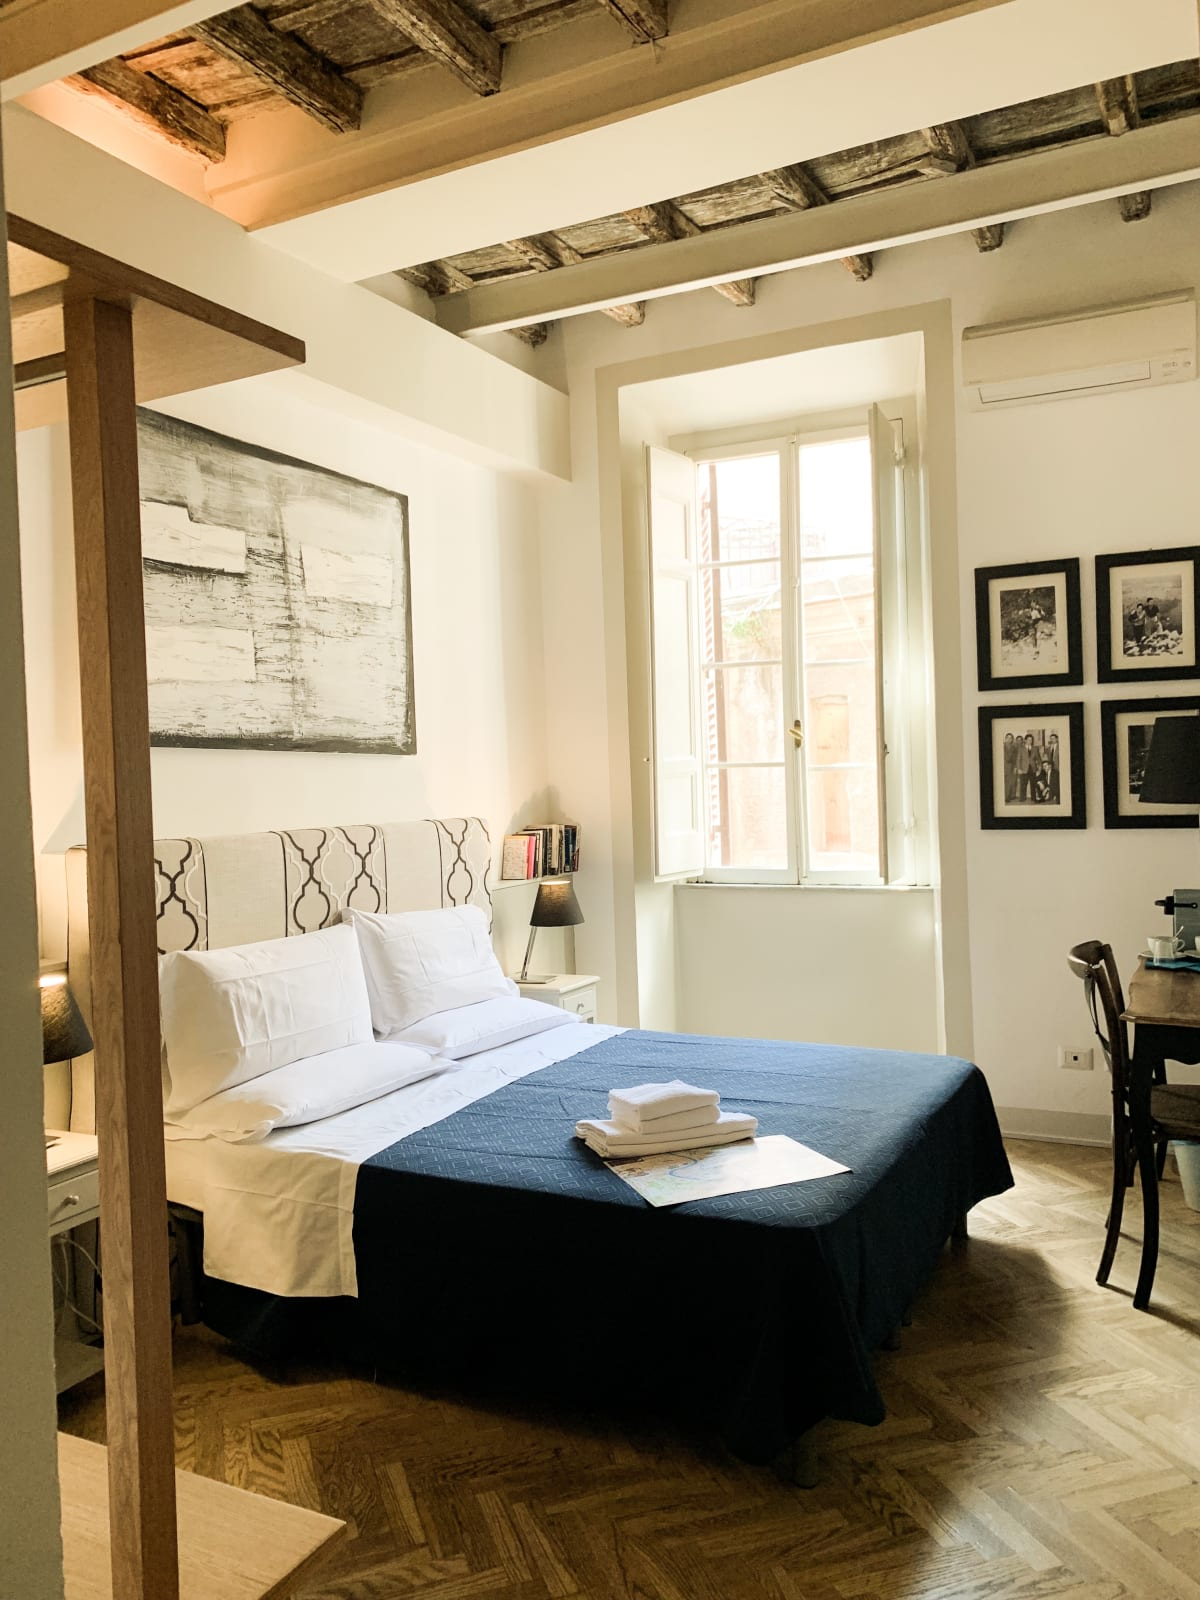 Blue Hostel in Rome, Italy, Italy